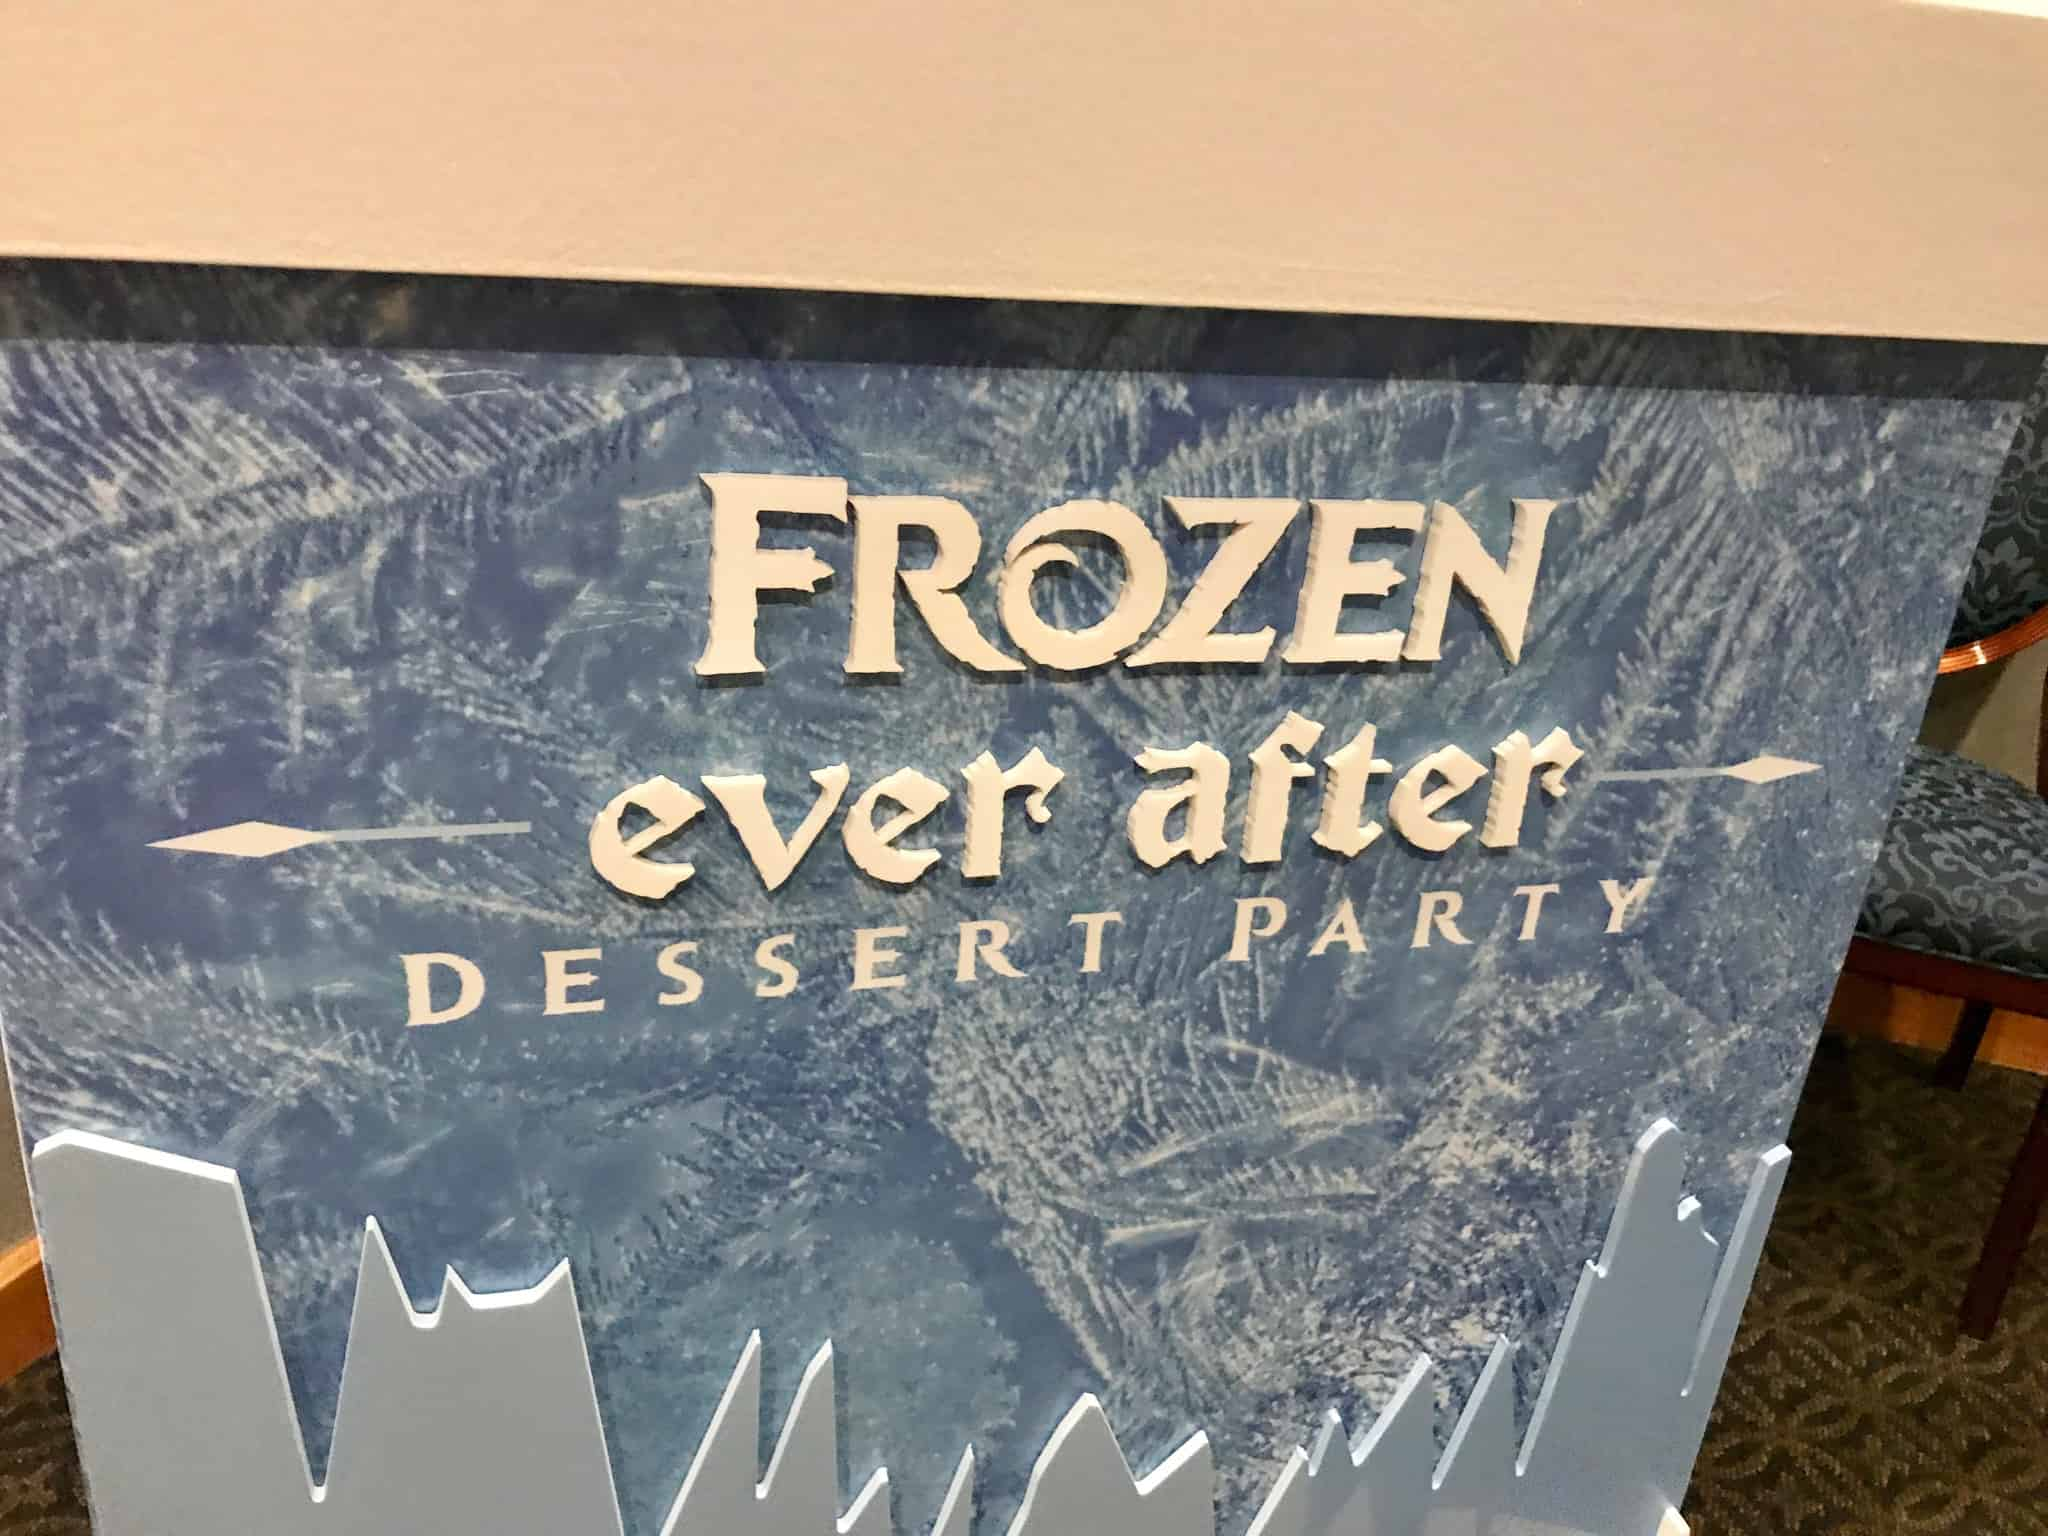 REVIEW: Frozen Ever After Sparkling Dessert Party at Epcot Might Be Worth Your Time & Money